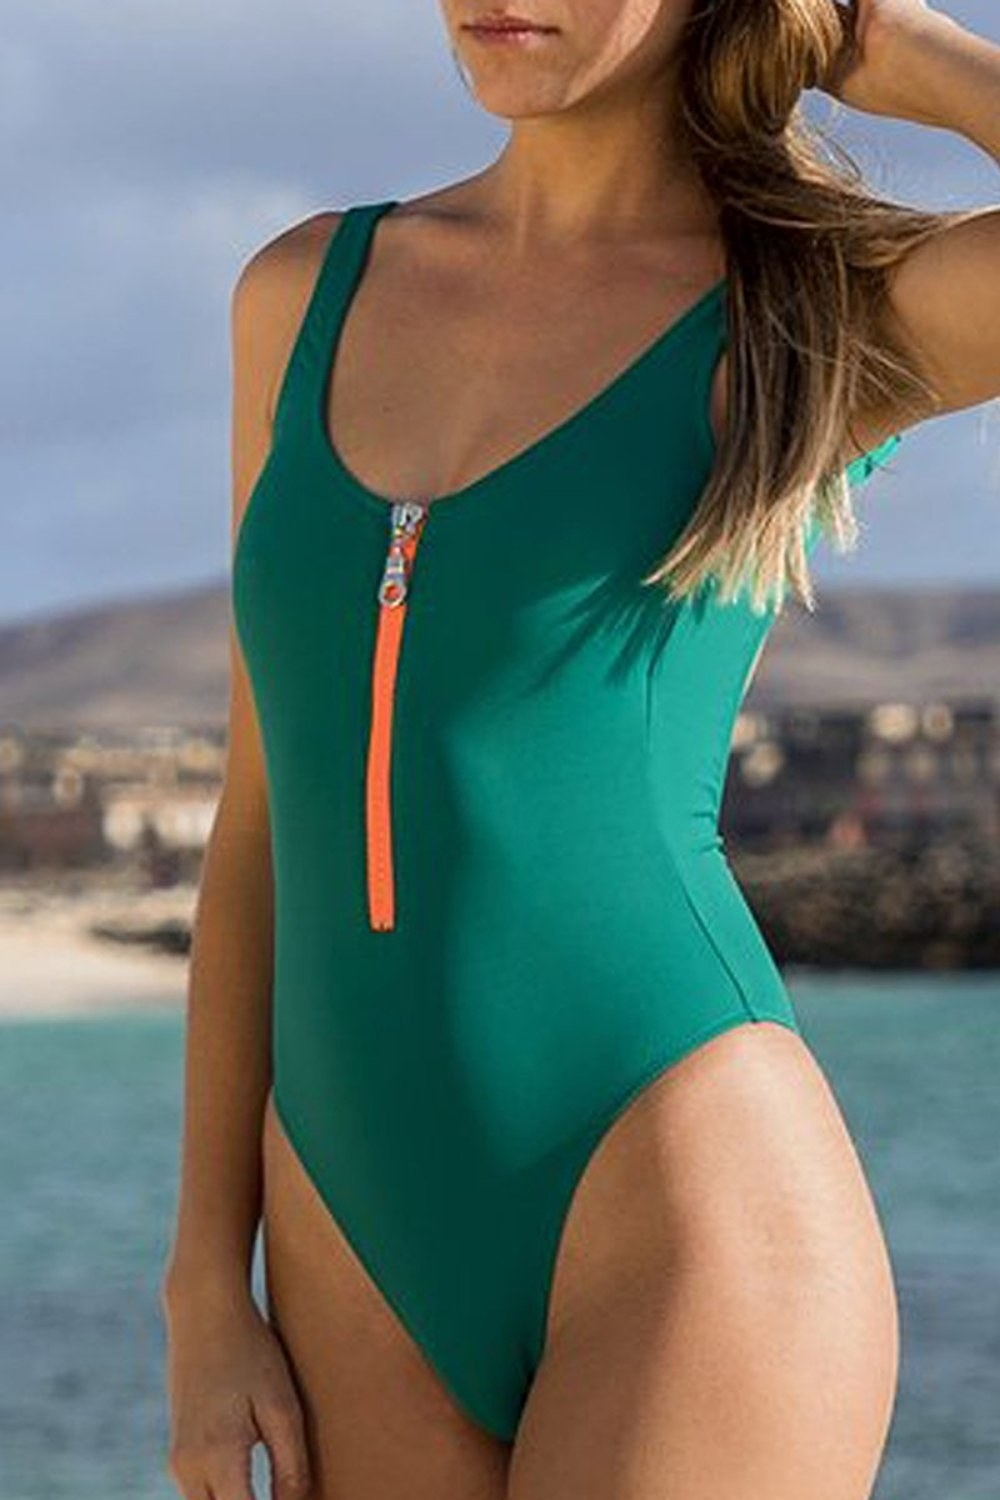 Bathing suits that reveal pussy